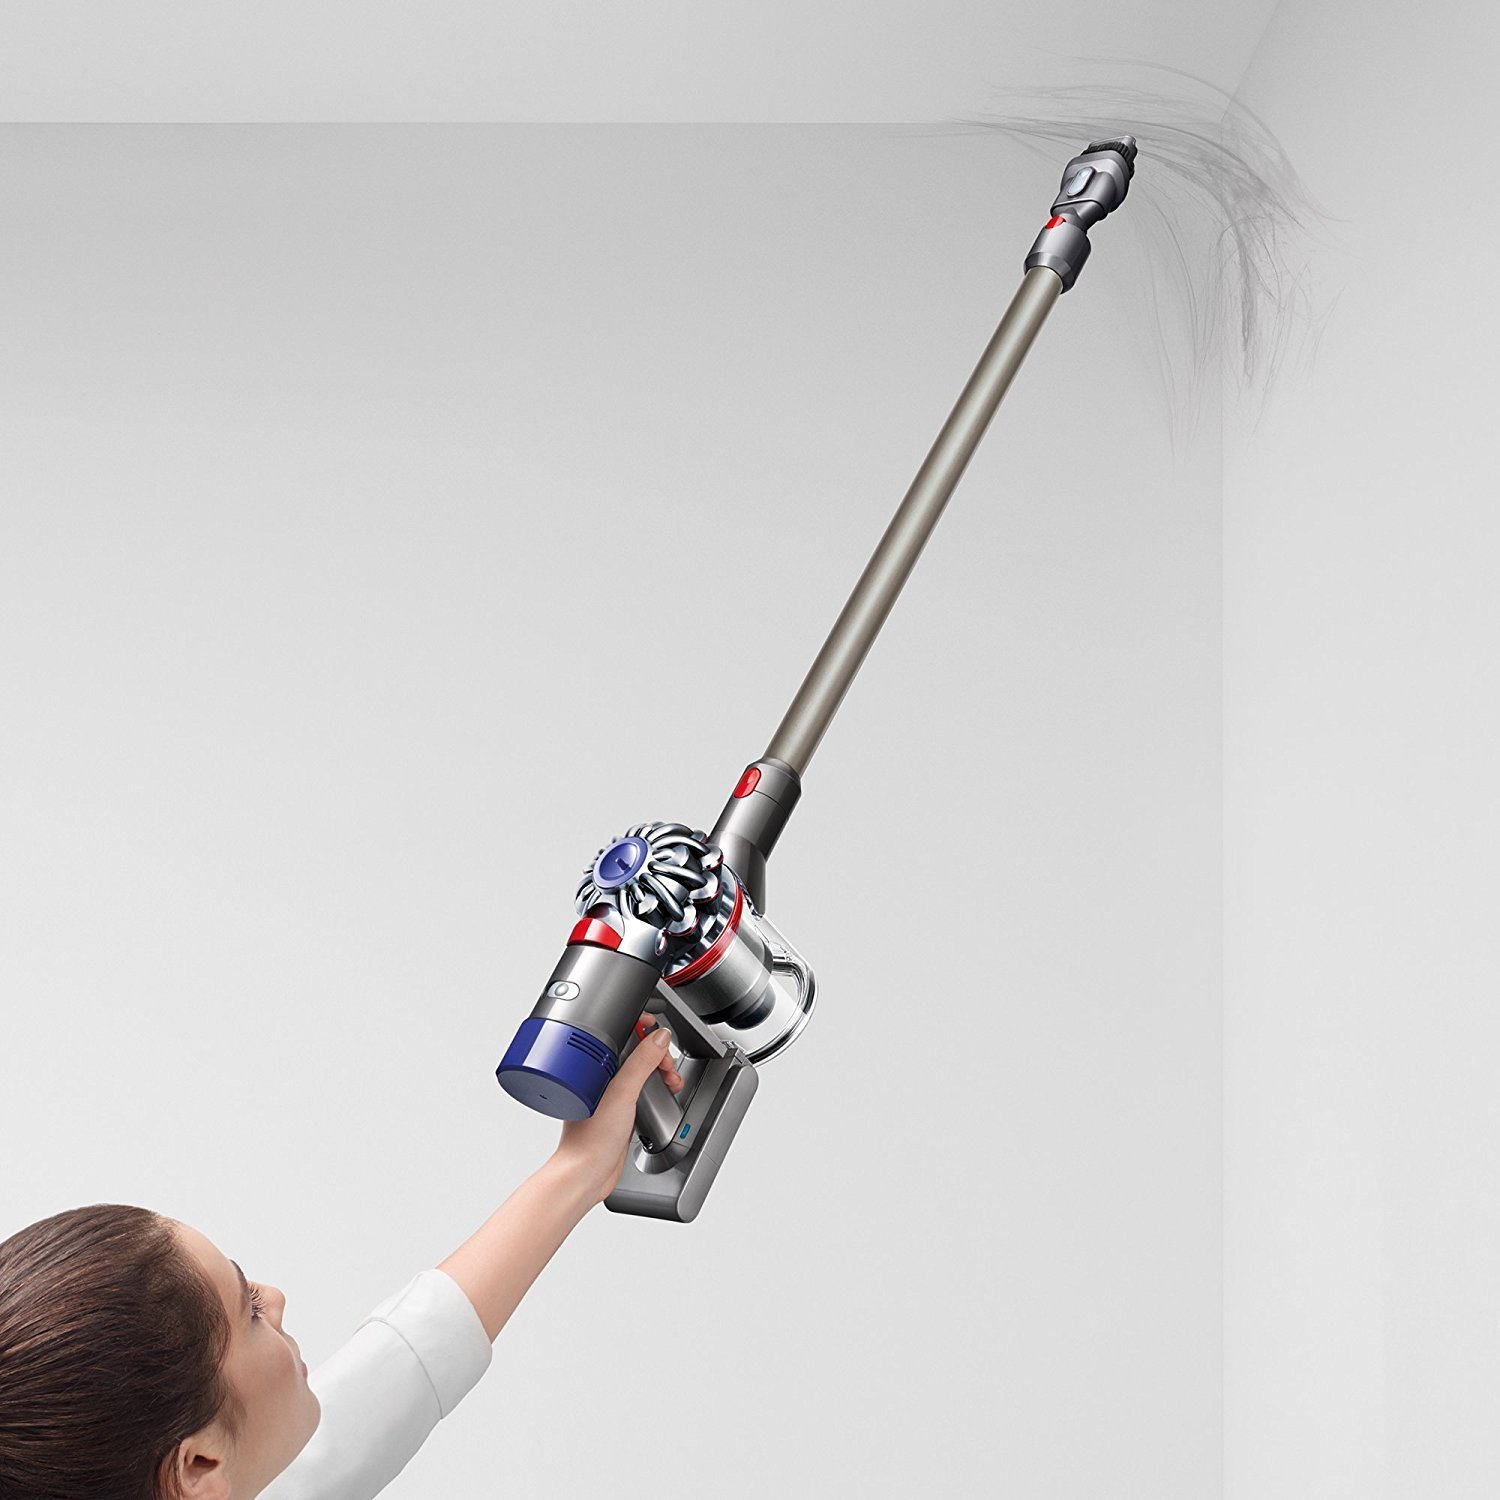 Dyson V8 Animal Cordless HEPA Vacuum Cleaner + Direct Drive Cleaner Head + Wand Set + Mini Motorized Tool + Dusting Brush + Docking Station + Combination Tool + Crevice Tool by Dyson